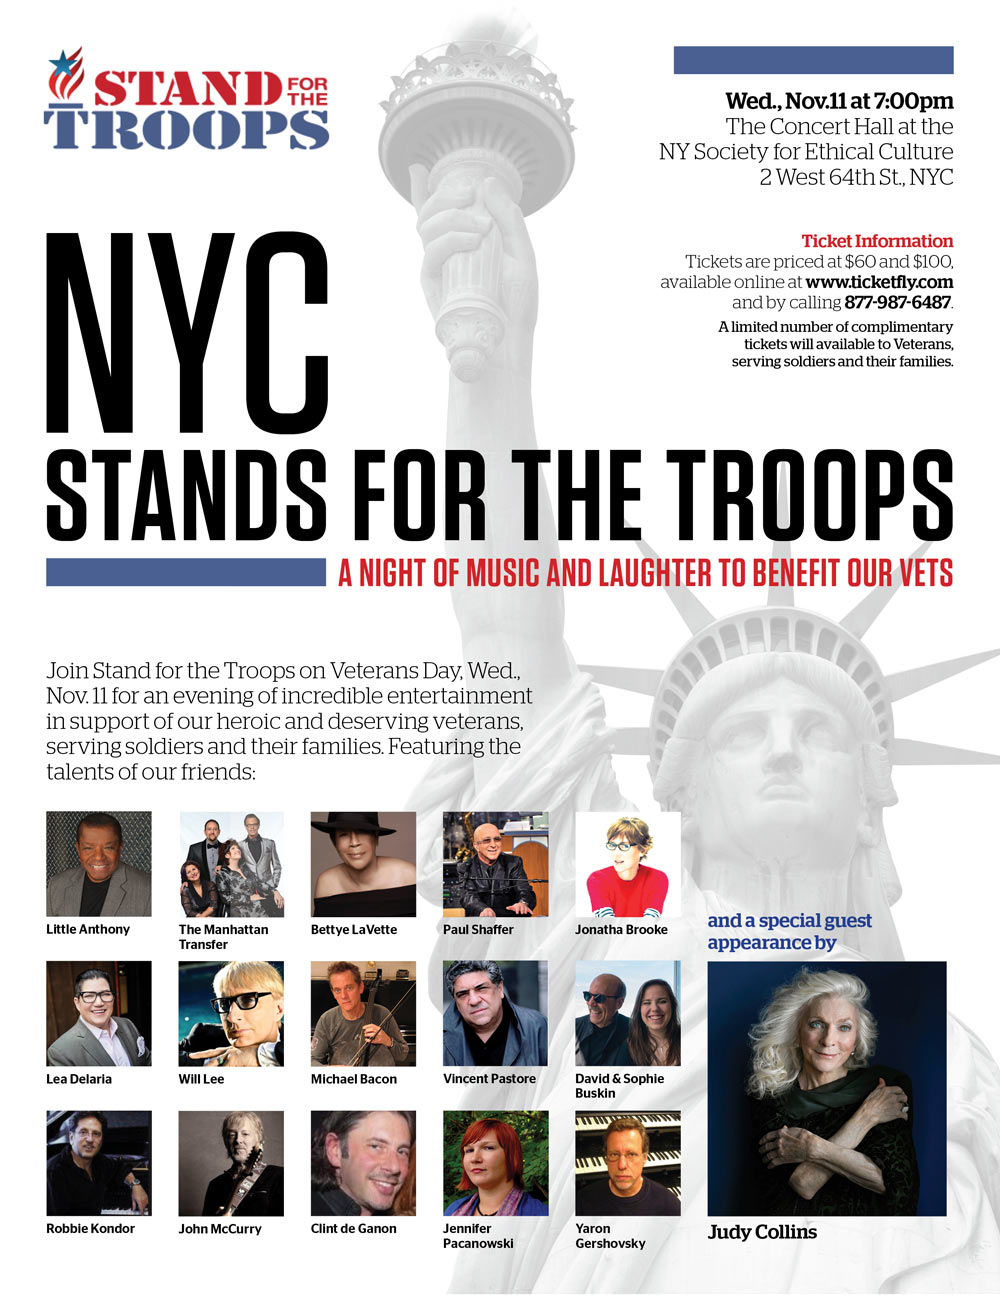 Crispin Cioe plays NYC Stands For The Troops poster